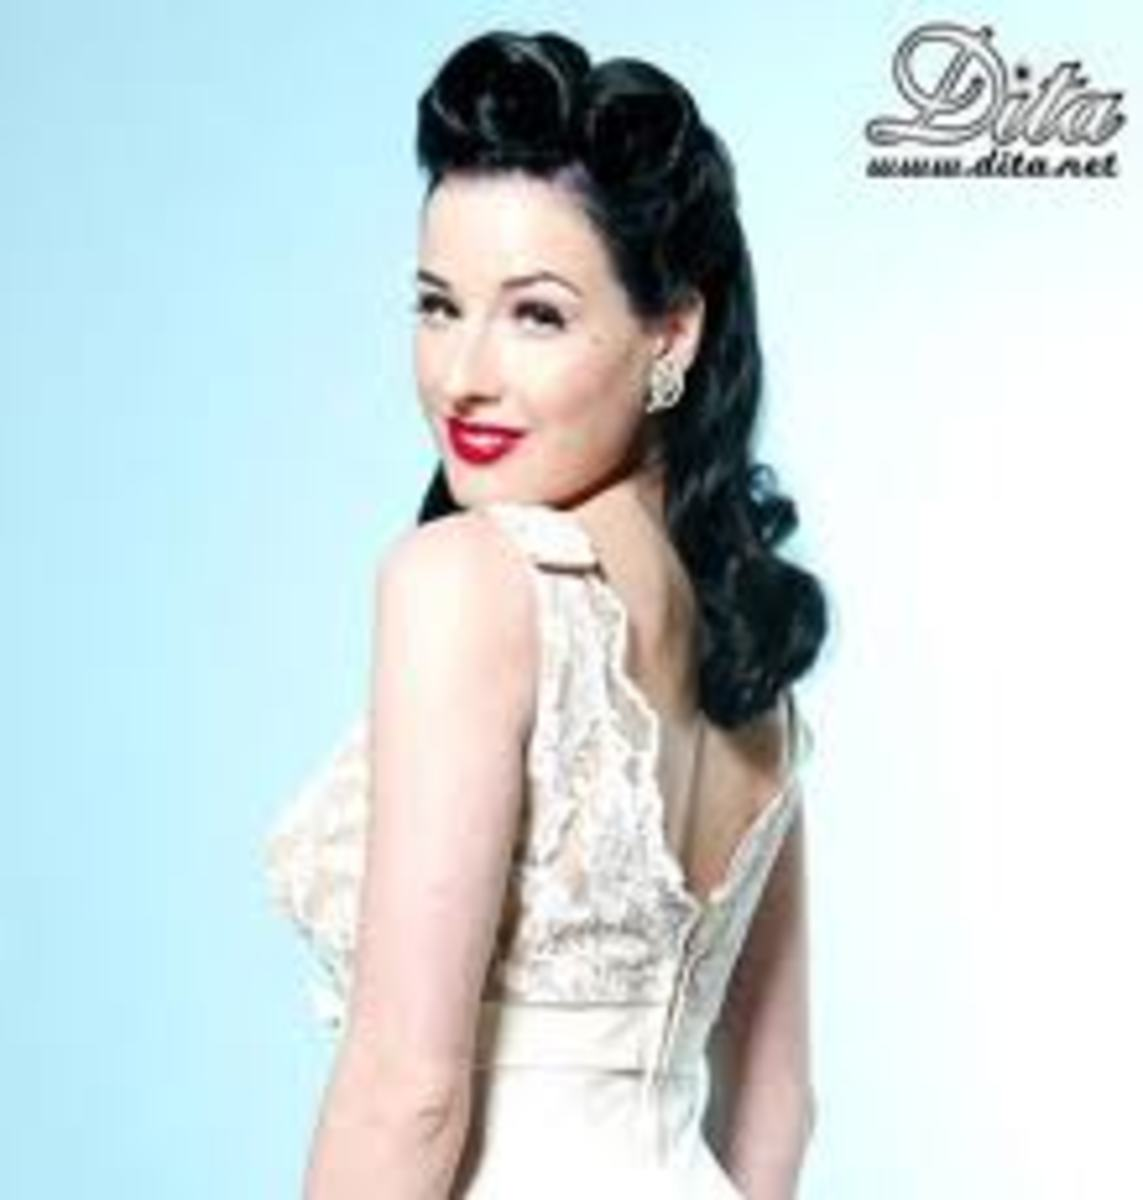 The gorgeous Dita Von Teese wearing her hair in victory rolls.